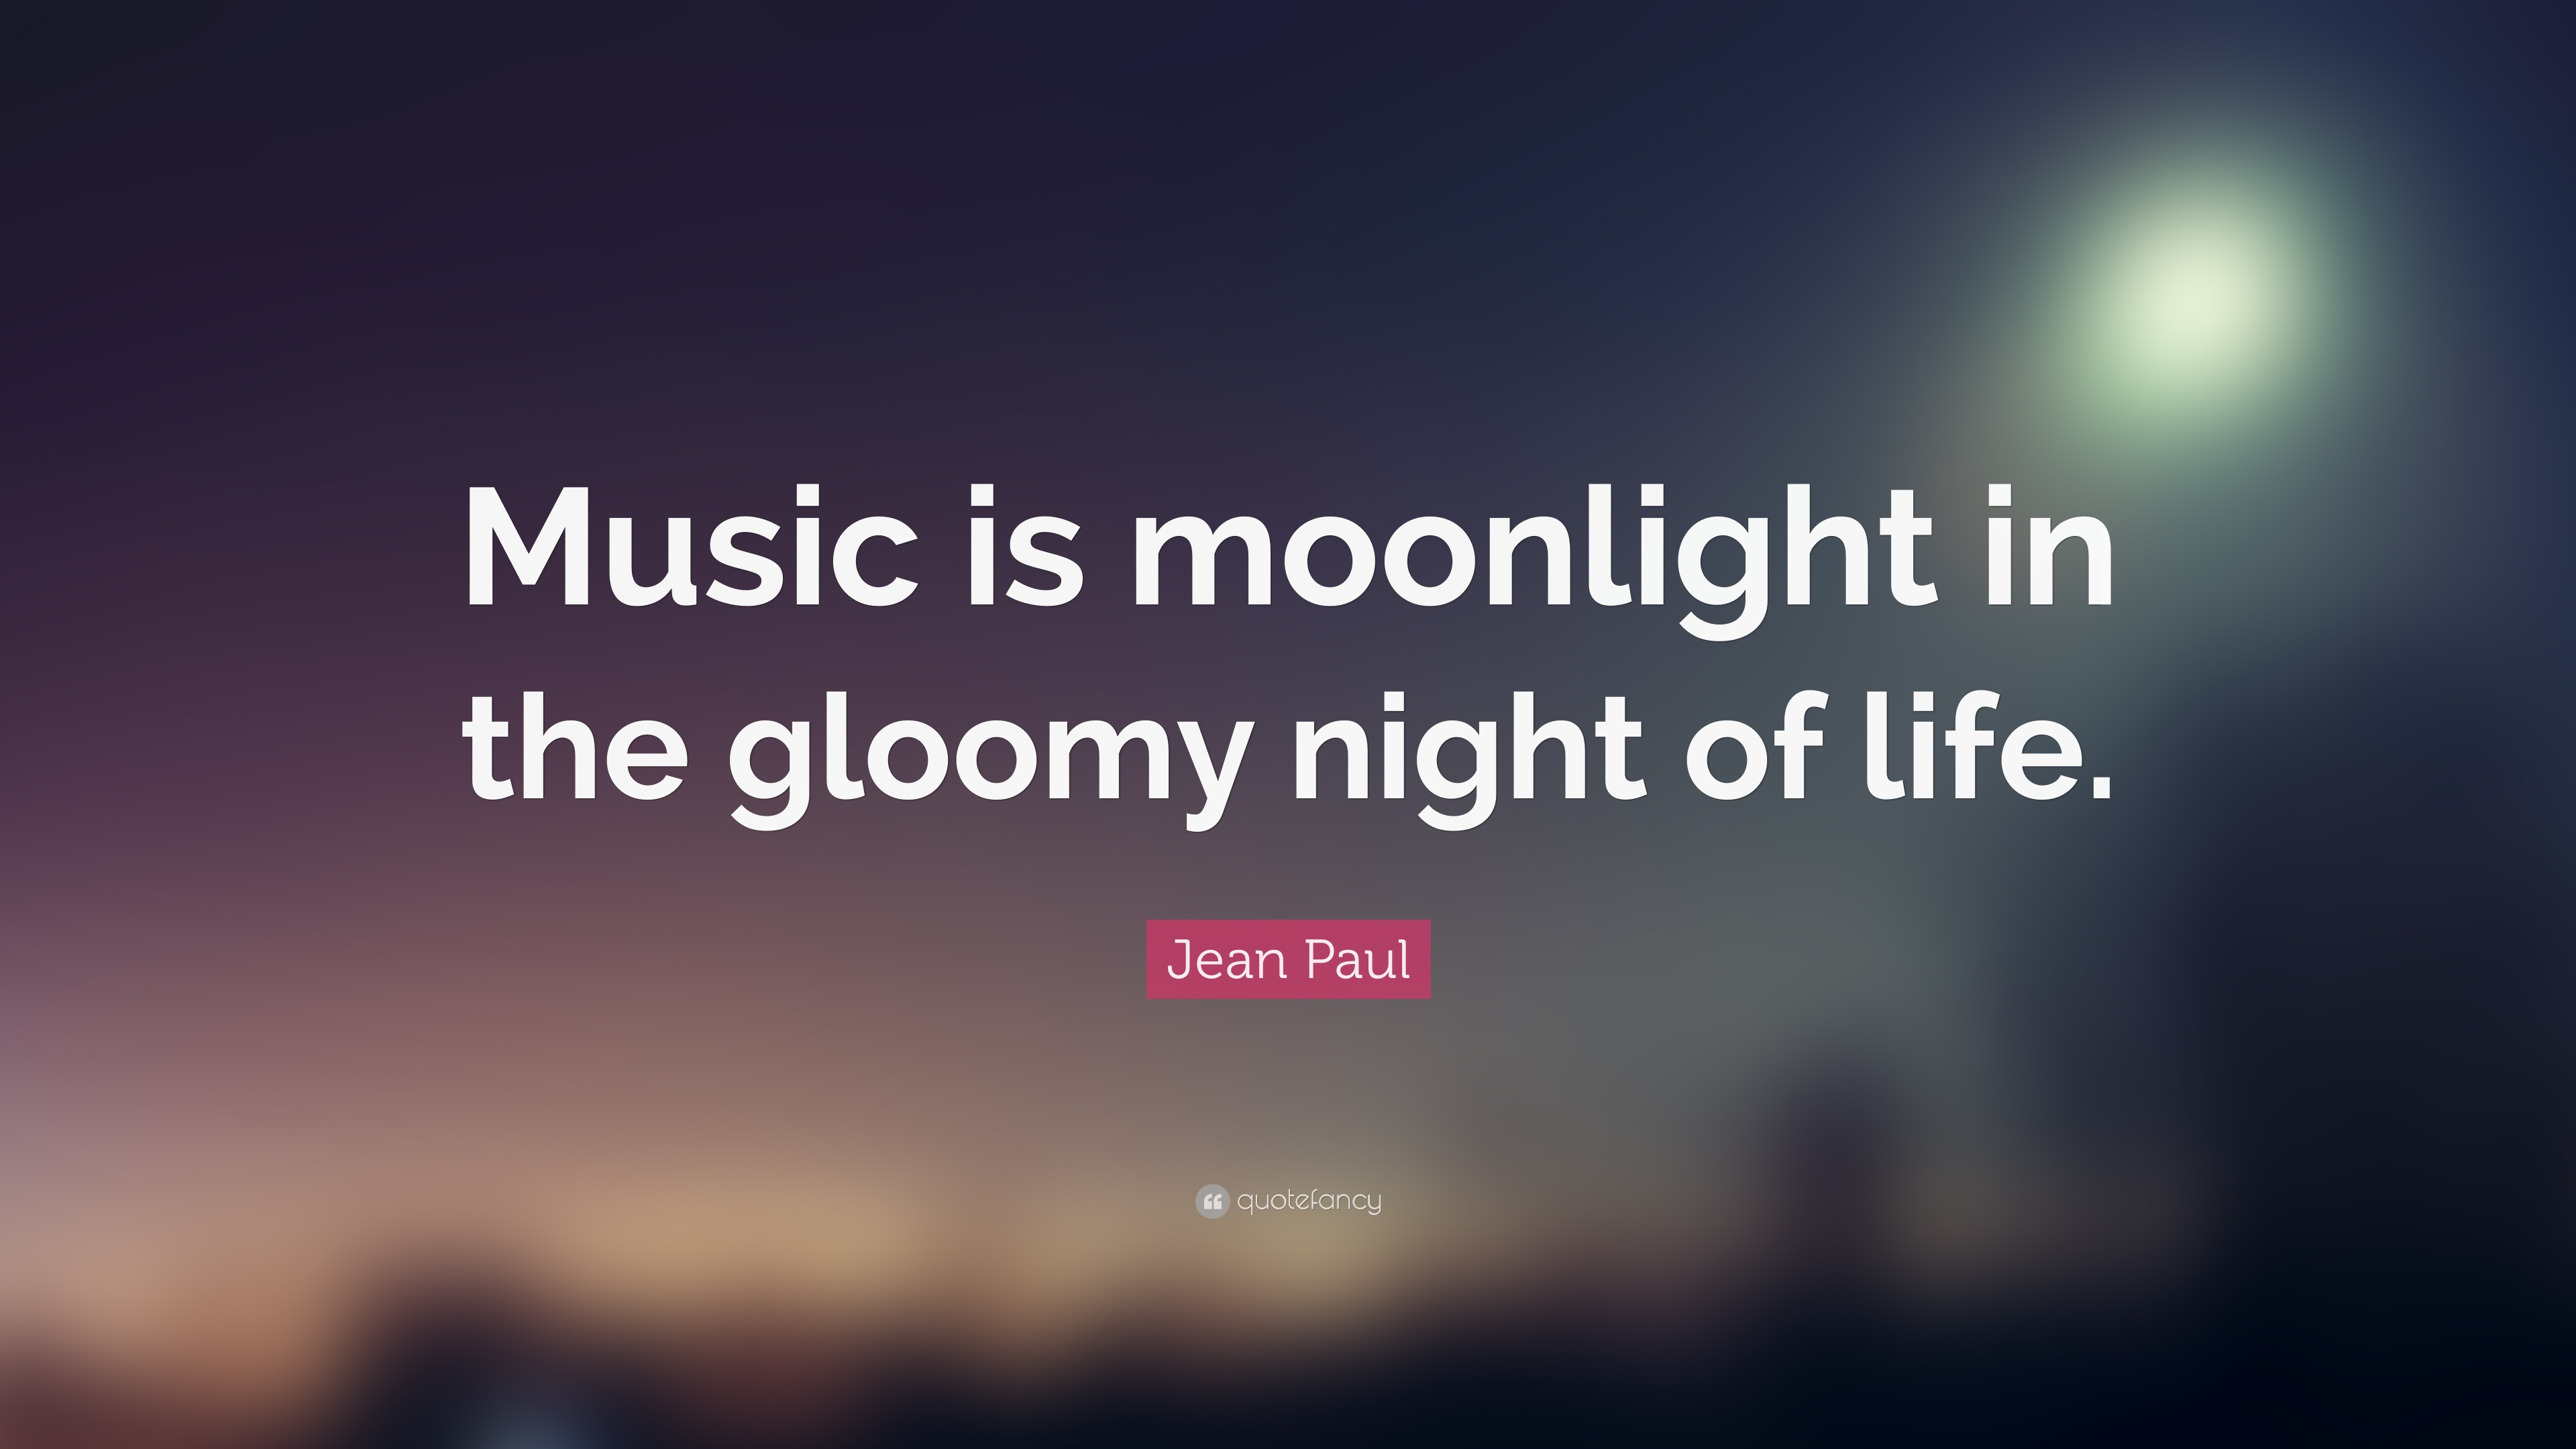 Merveilleux Jean Paul Quote: U201cMusic Is Moonlight In The Gloomy Night Of Life.u201d